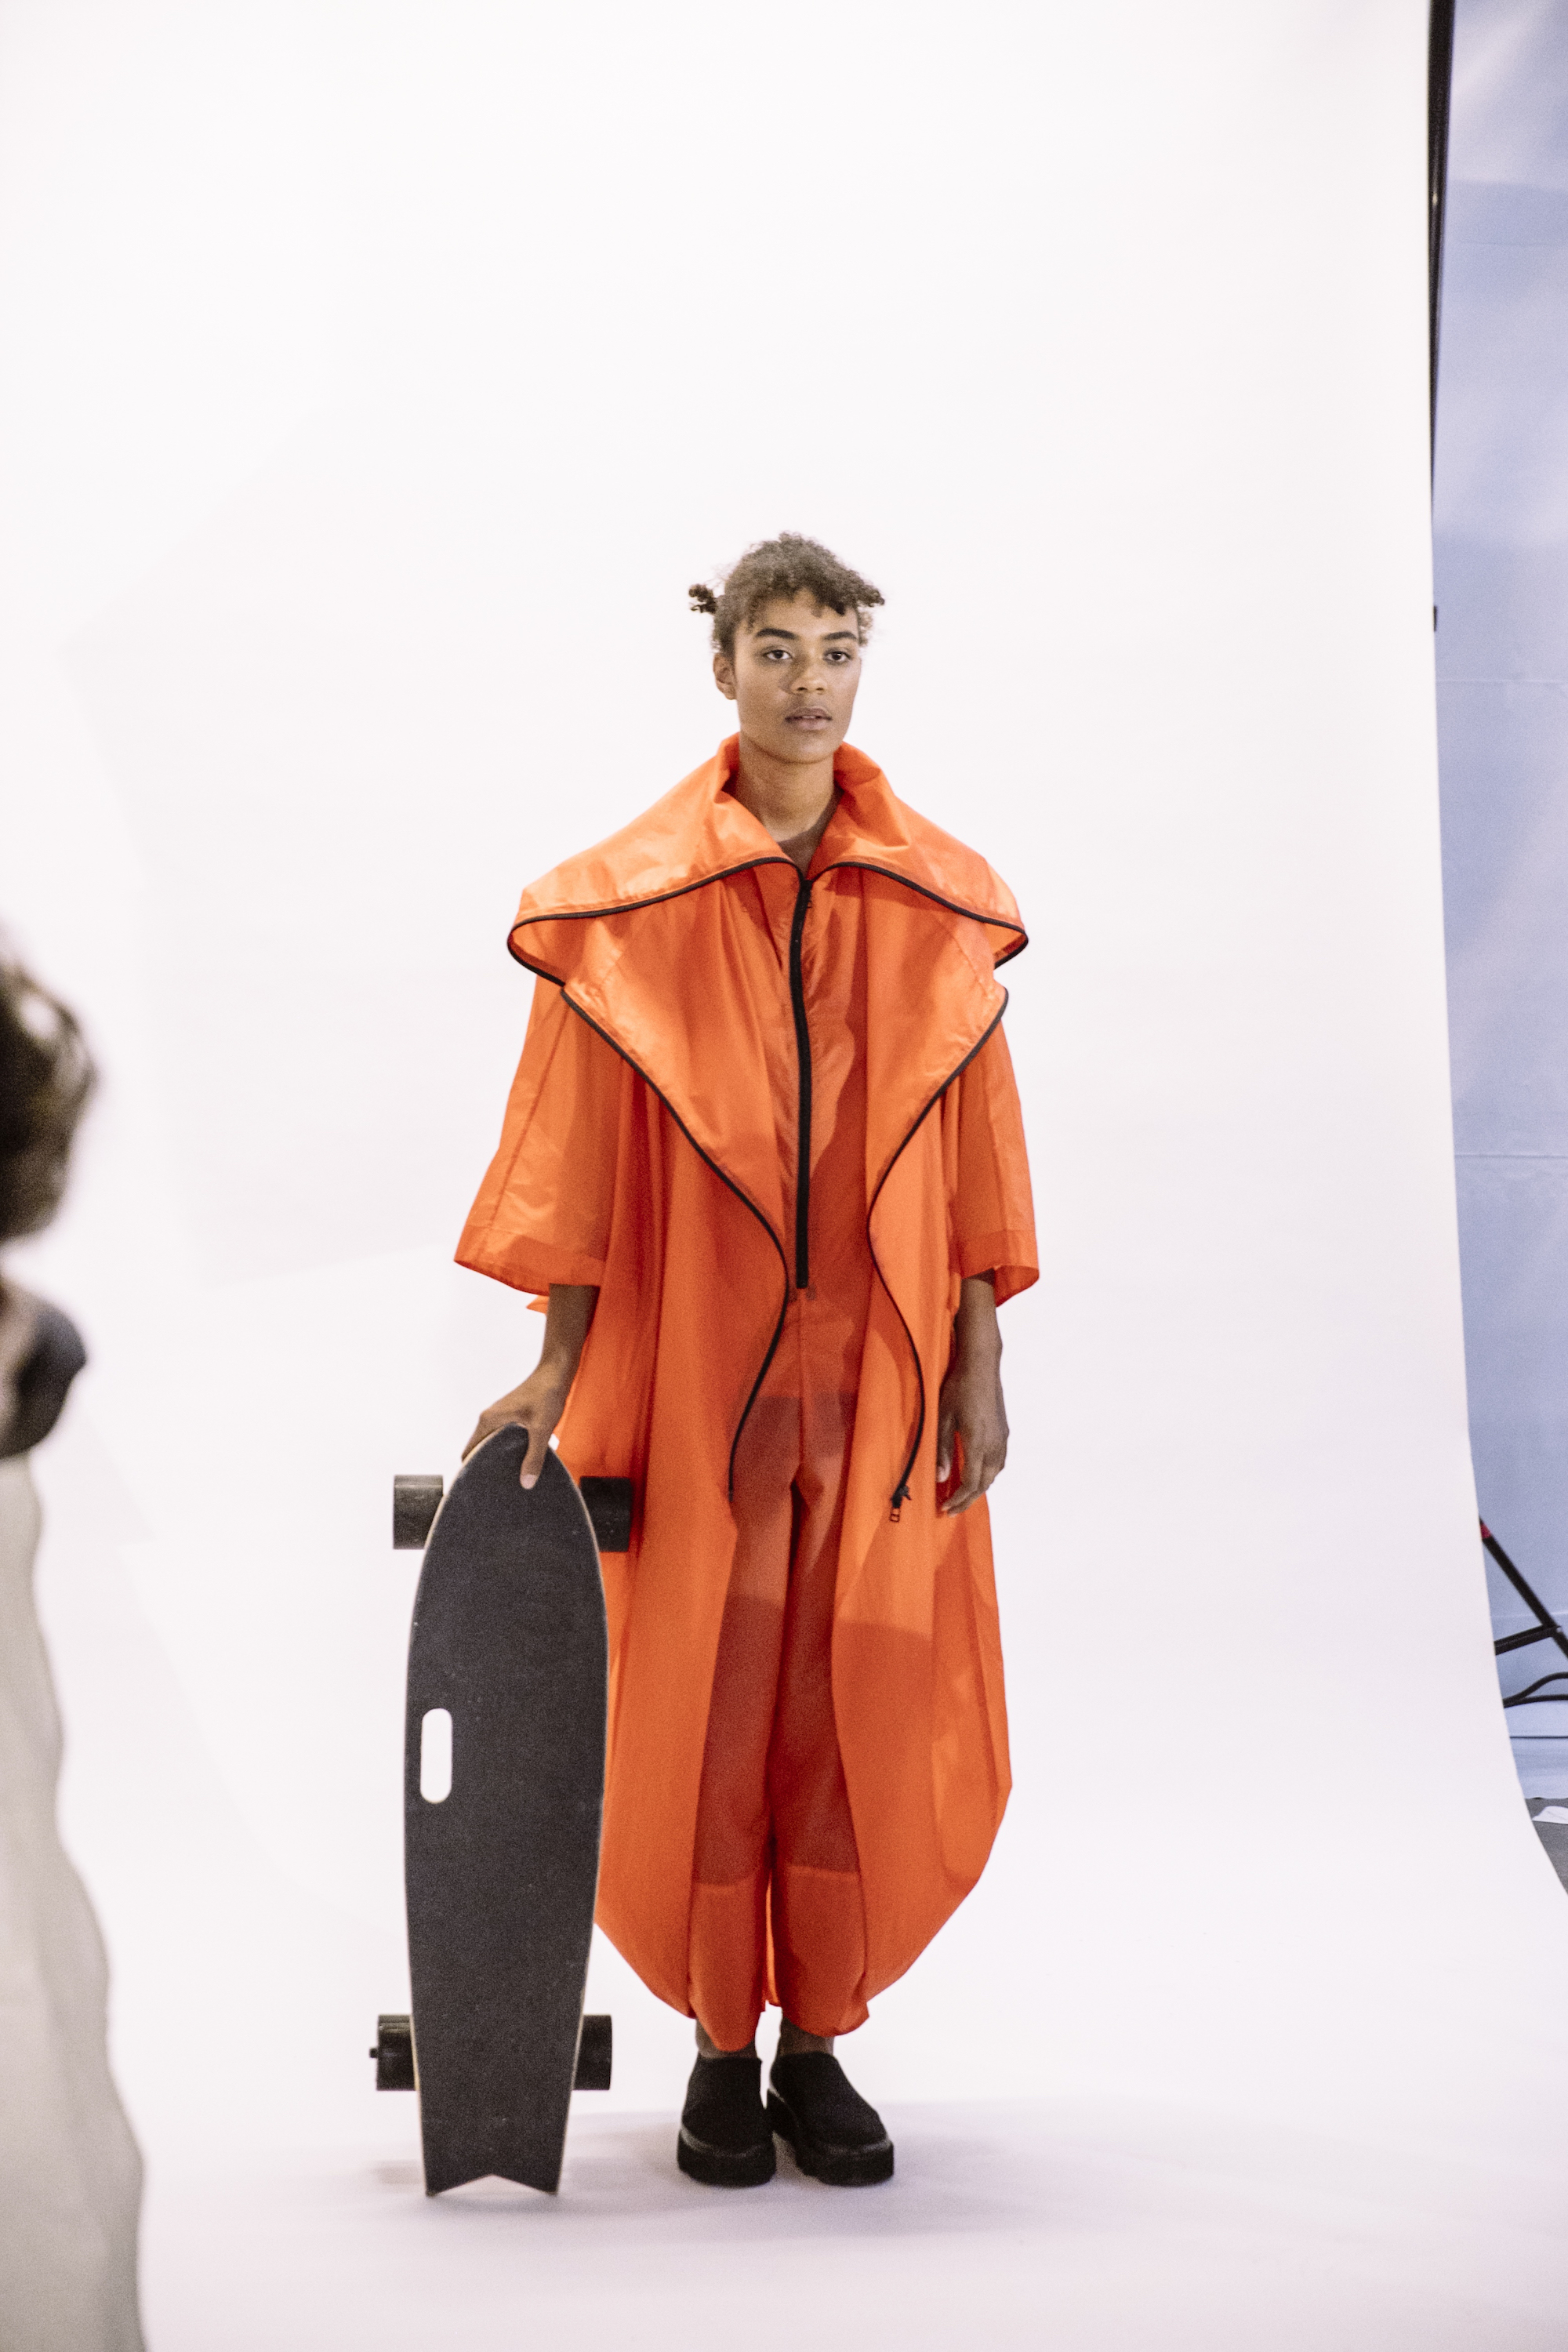 Wonderland Paris Fashion Week Issey Miyake SS20 show orange raincoat